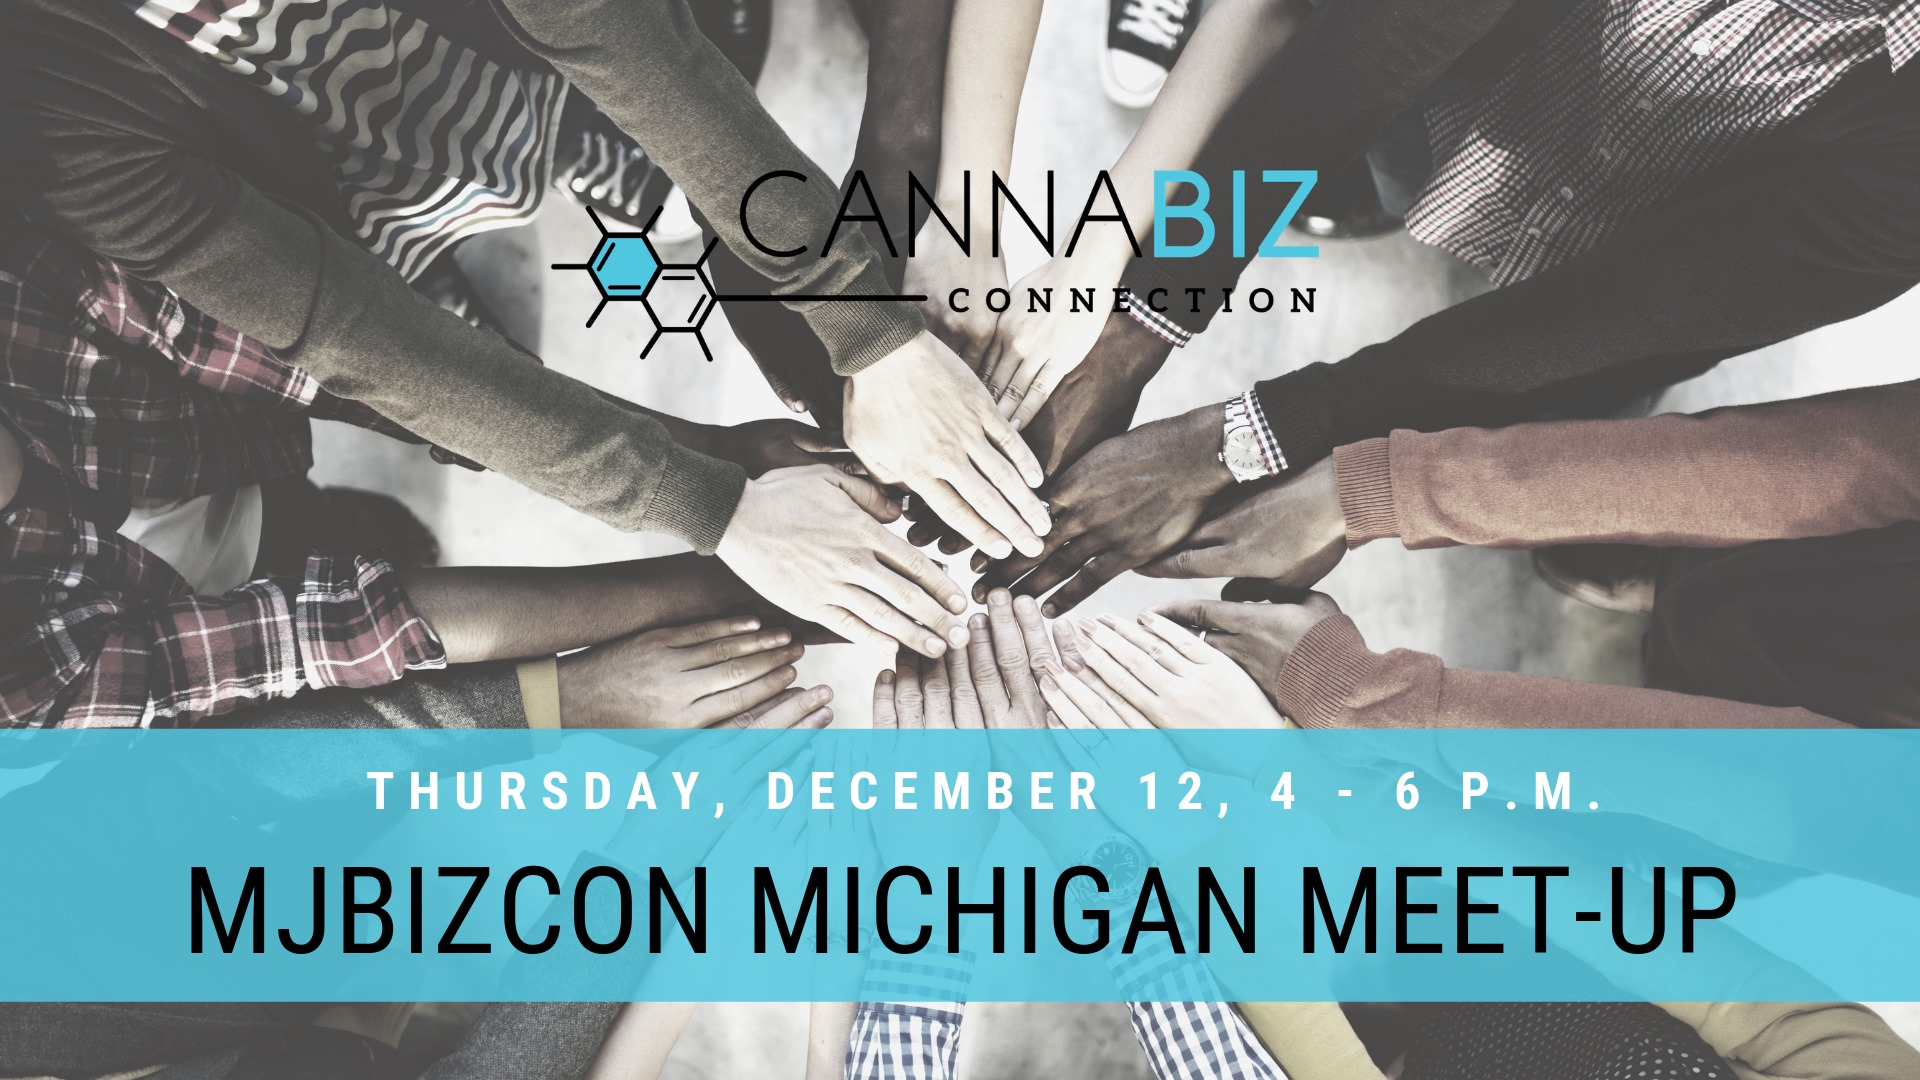 MJBIZCON Michigan Meetup